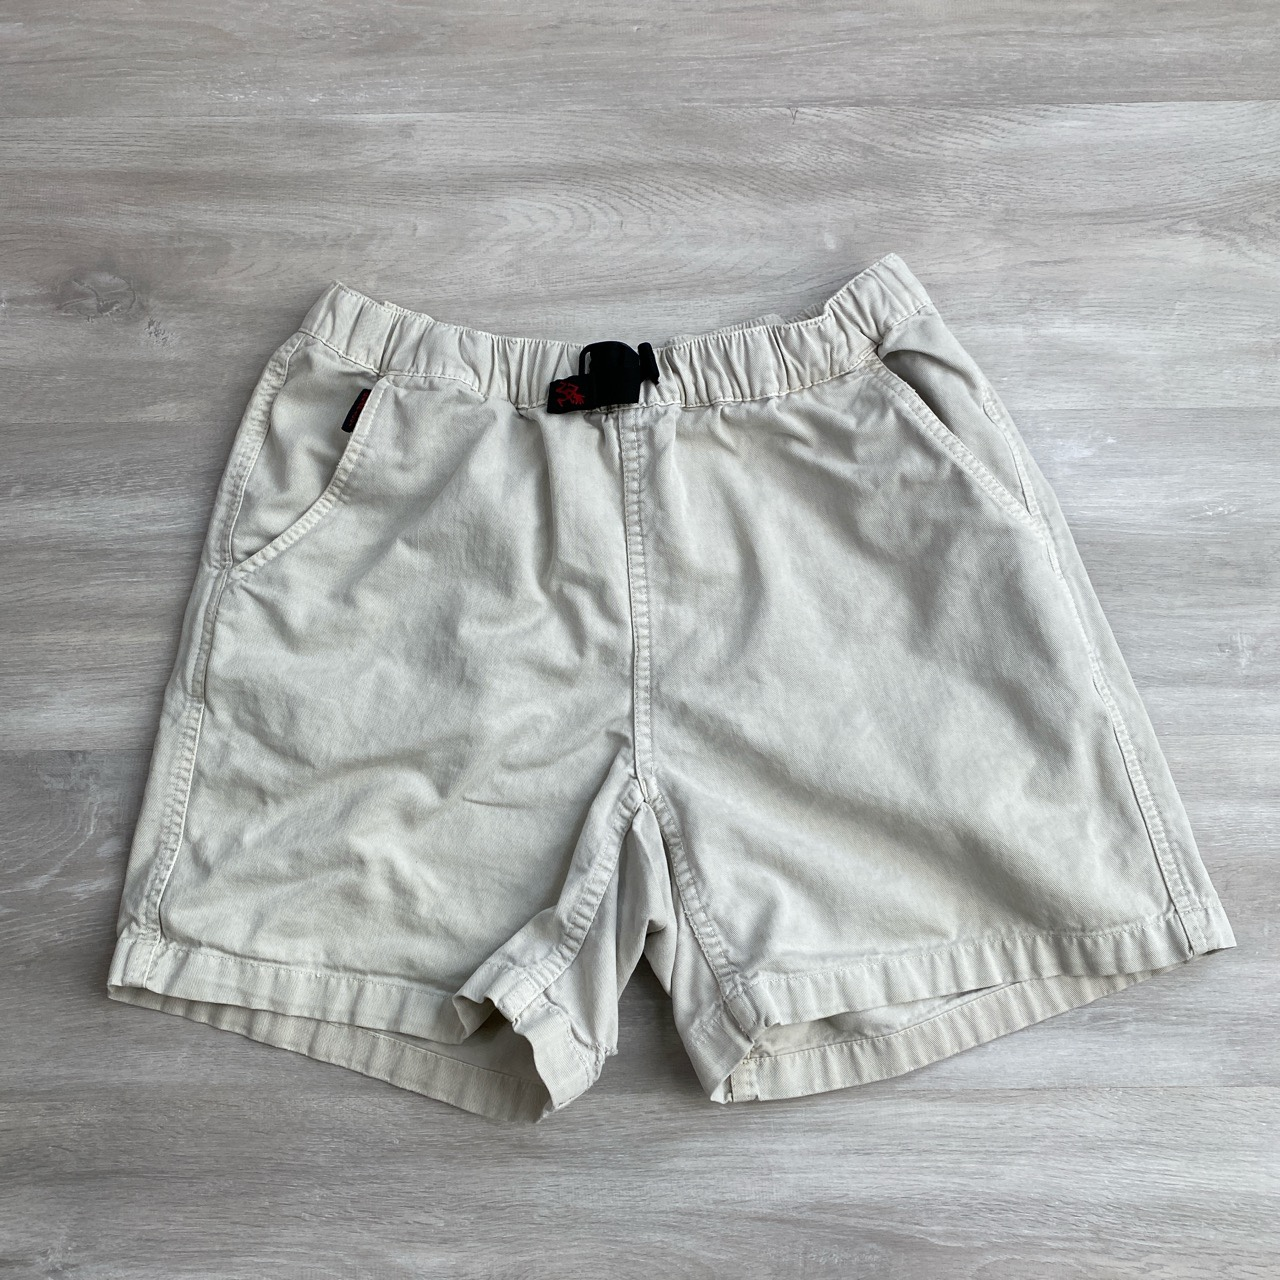 Product Image 1 - Women's vintage tan Gramicci outdoor